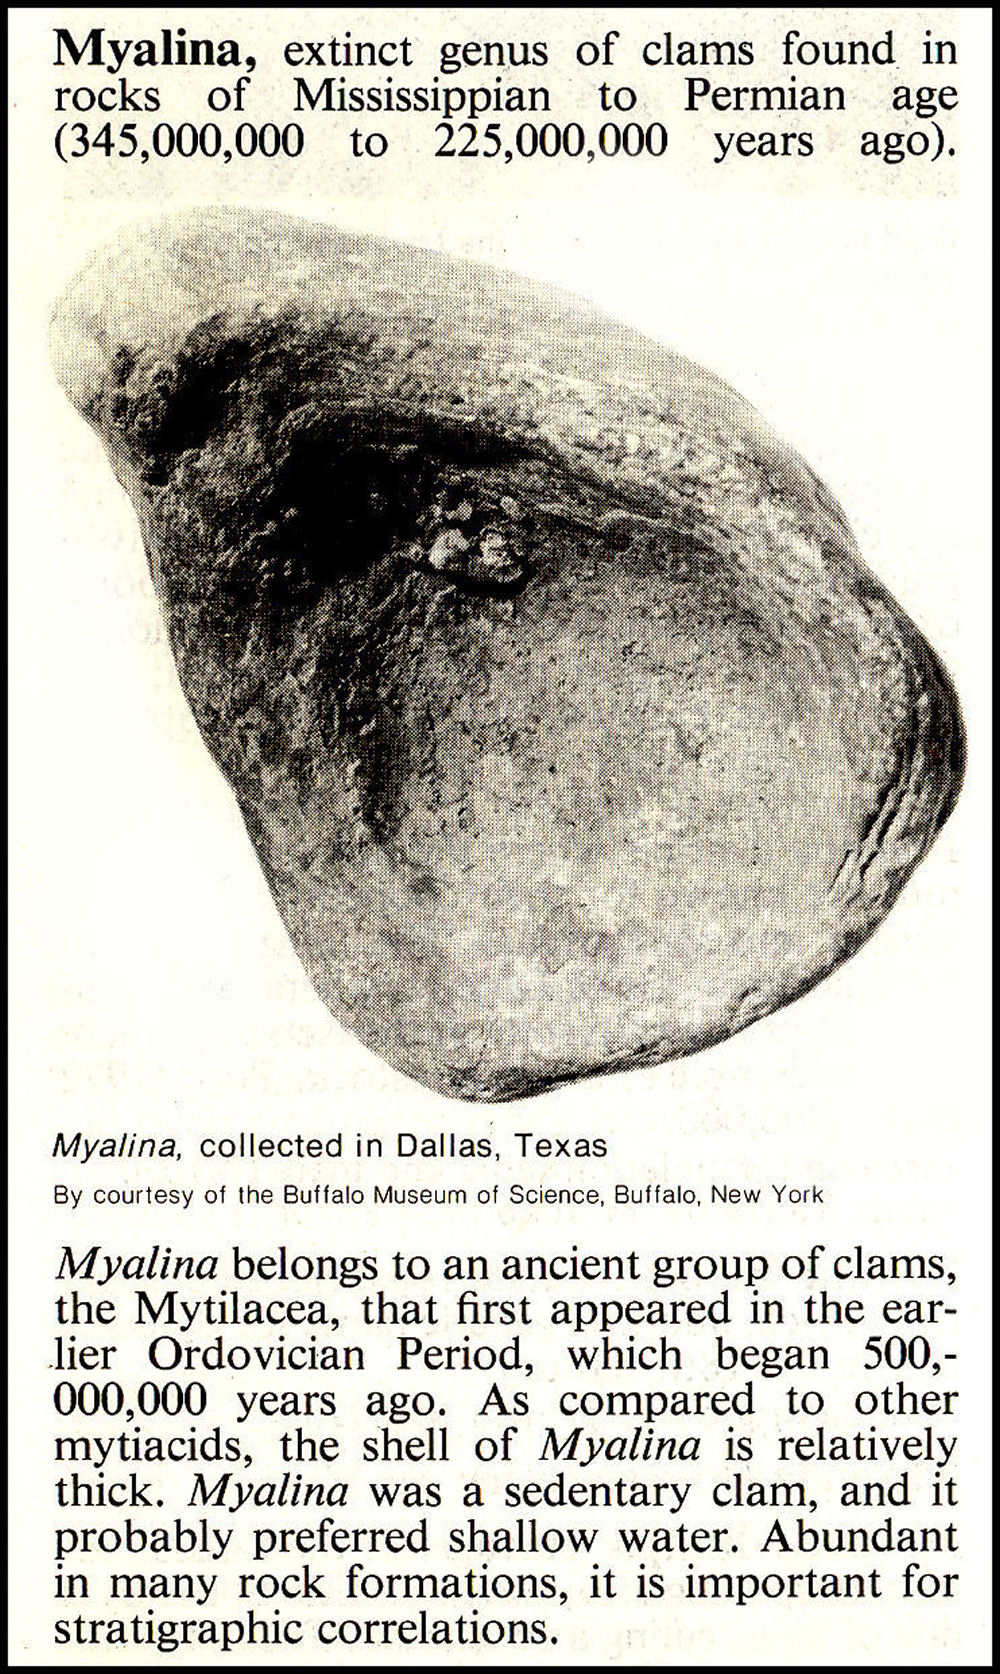 Encyclopedia Brittanica entry about the extinct Myalina fossil